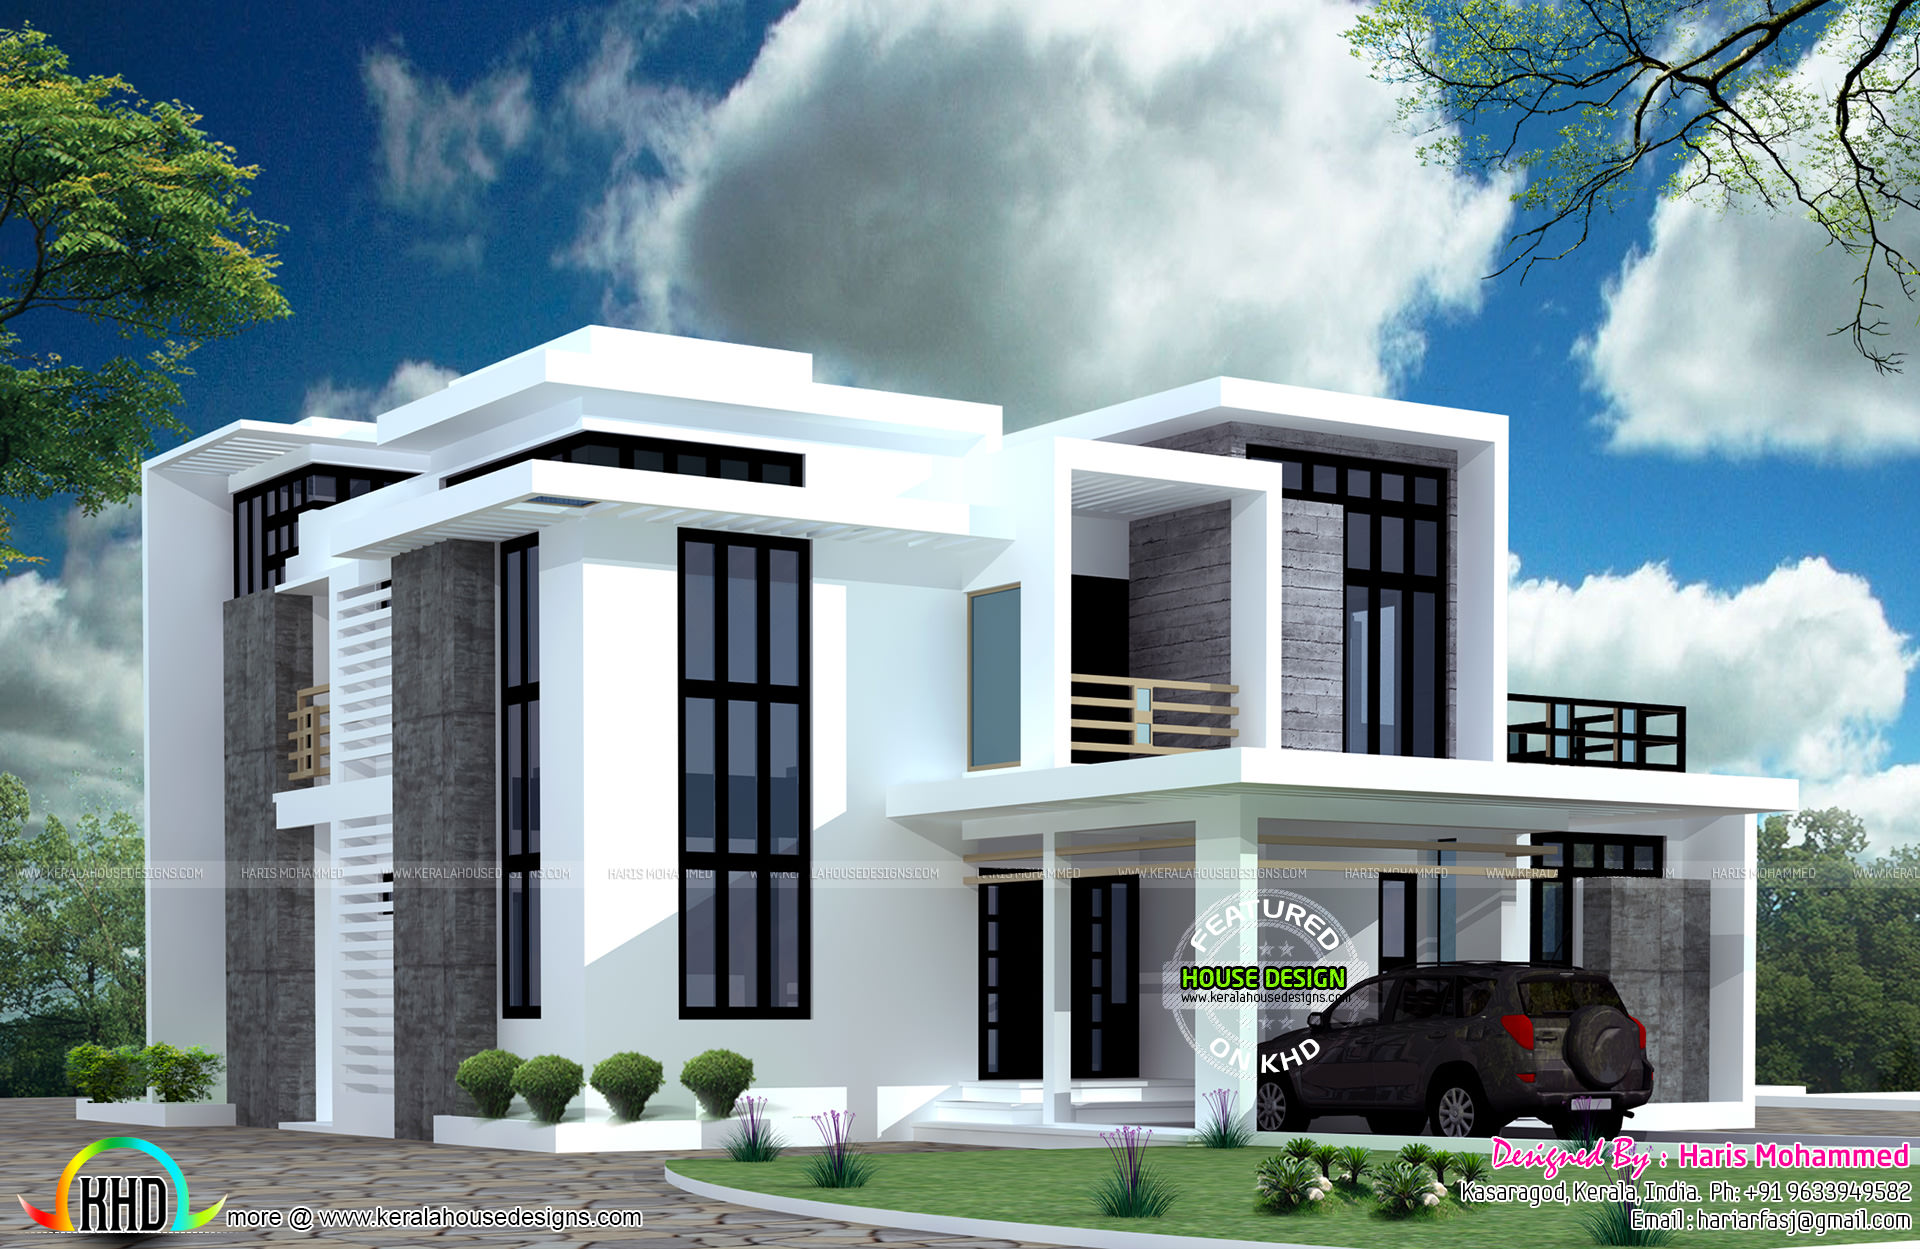 4 Bedroom Home In 2823 Square Feet